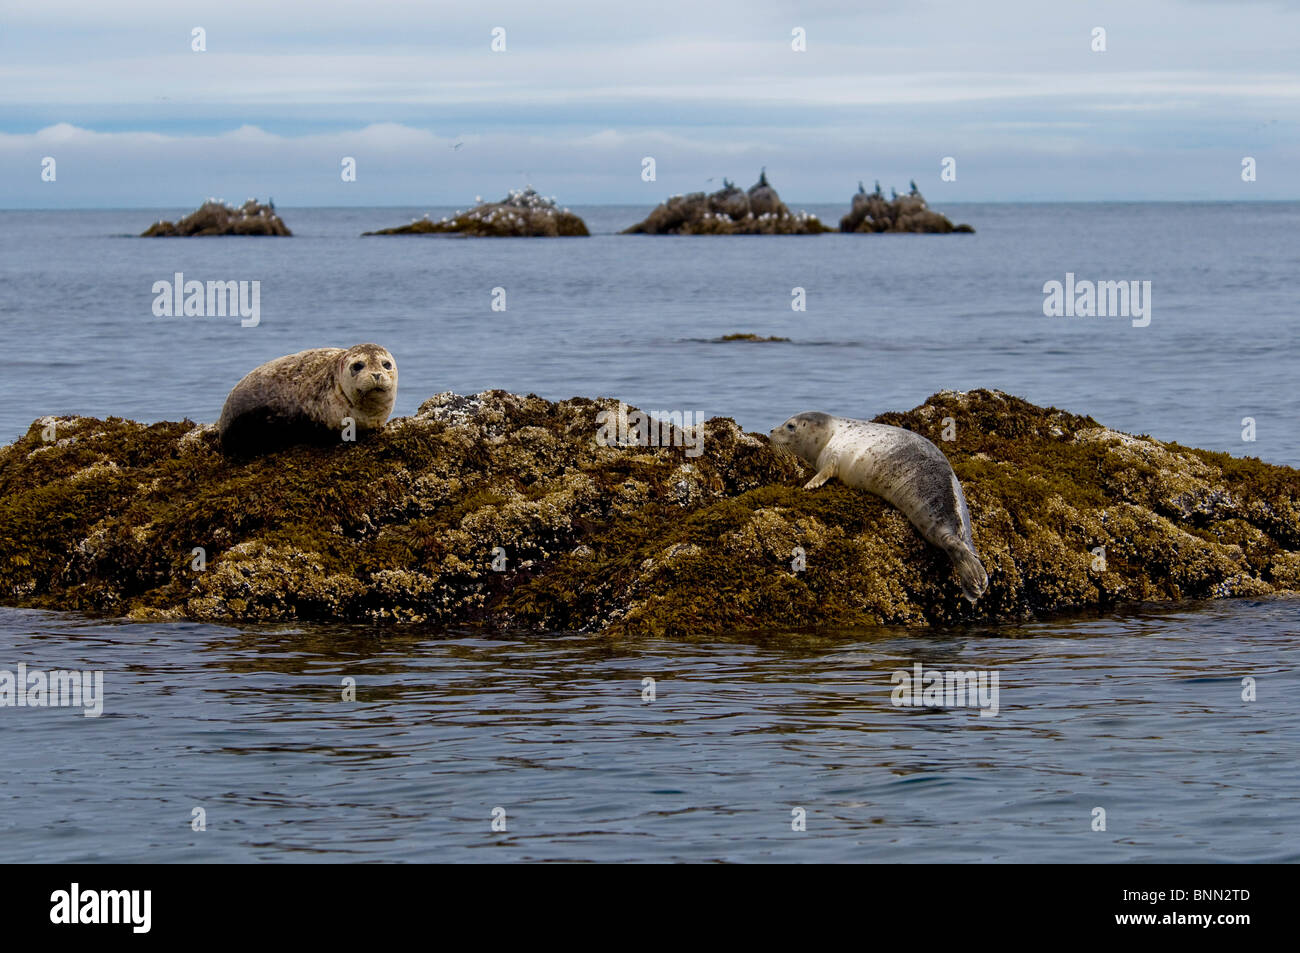 Two Harbor seals rest on a rock off the shore of  Kukak Bay, Katmai National Park, Alaska, Summer Stock Photo